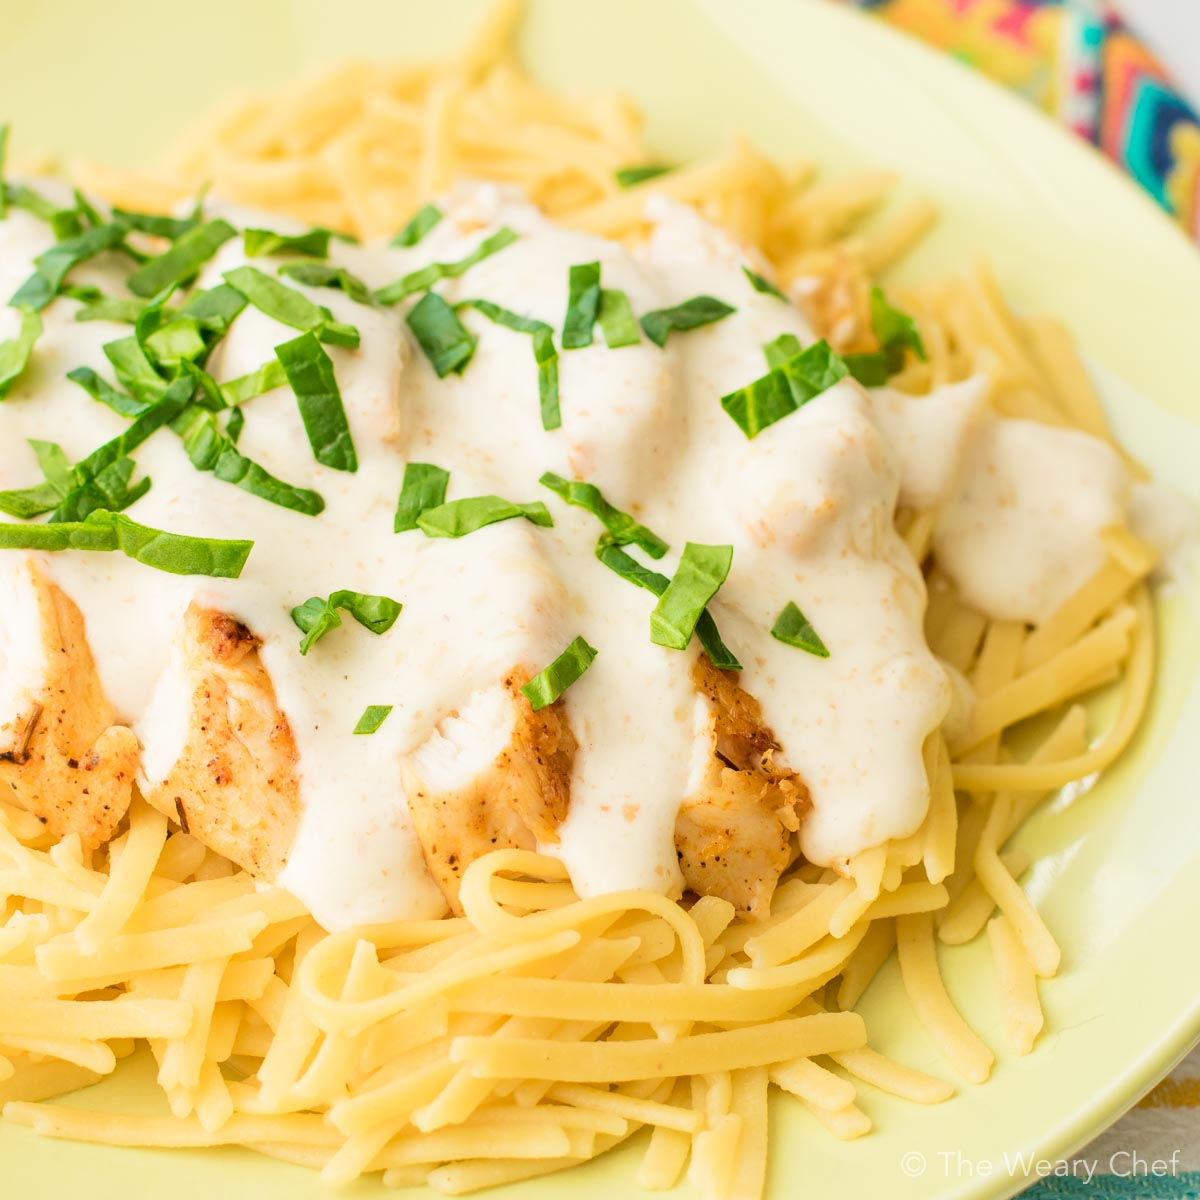 This lightened up chicken alfredo pasta is easy to prepare. It's perfect for special occasions or weeknight family dinners!